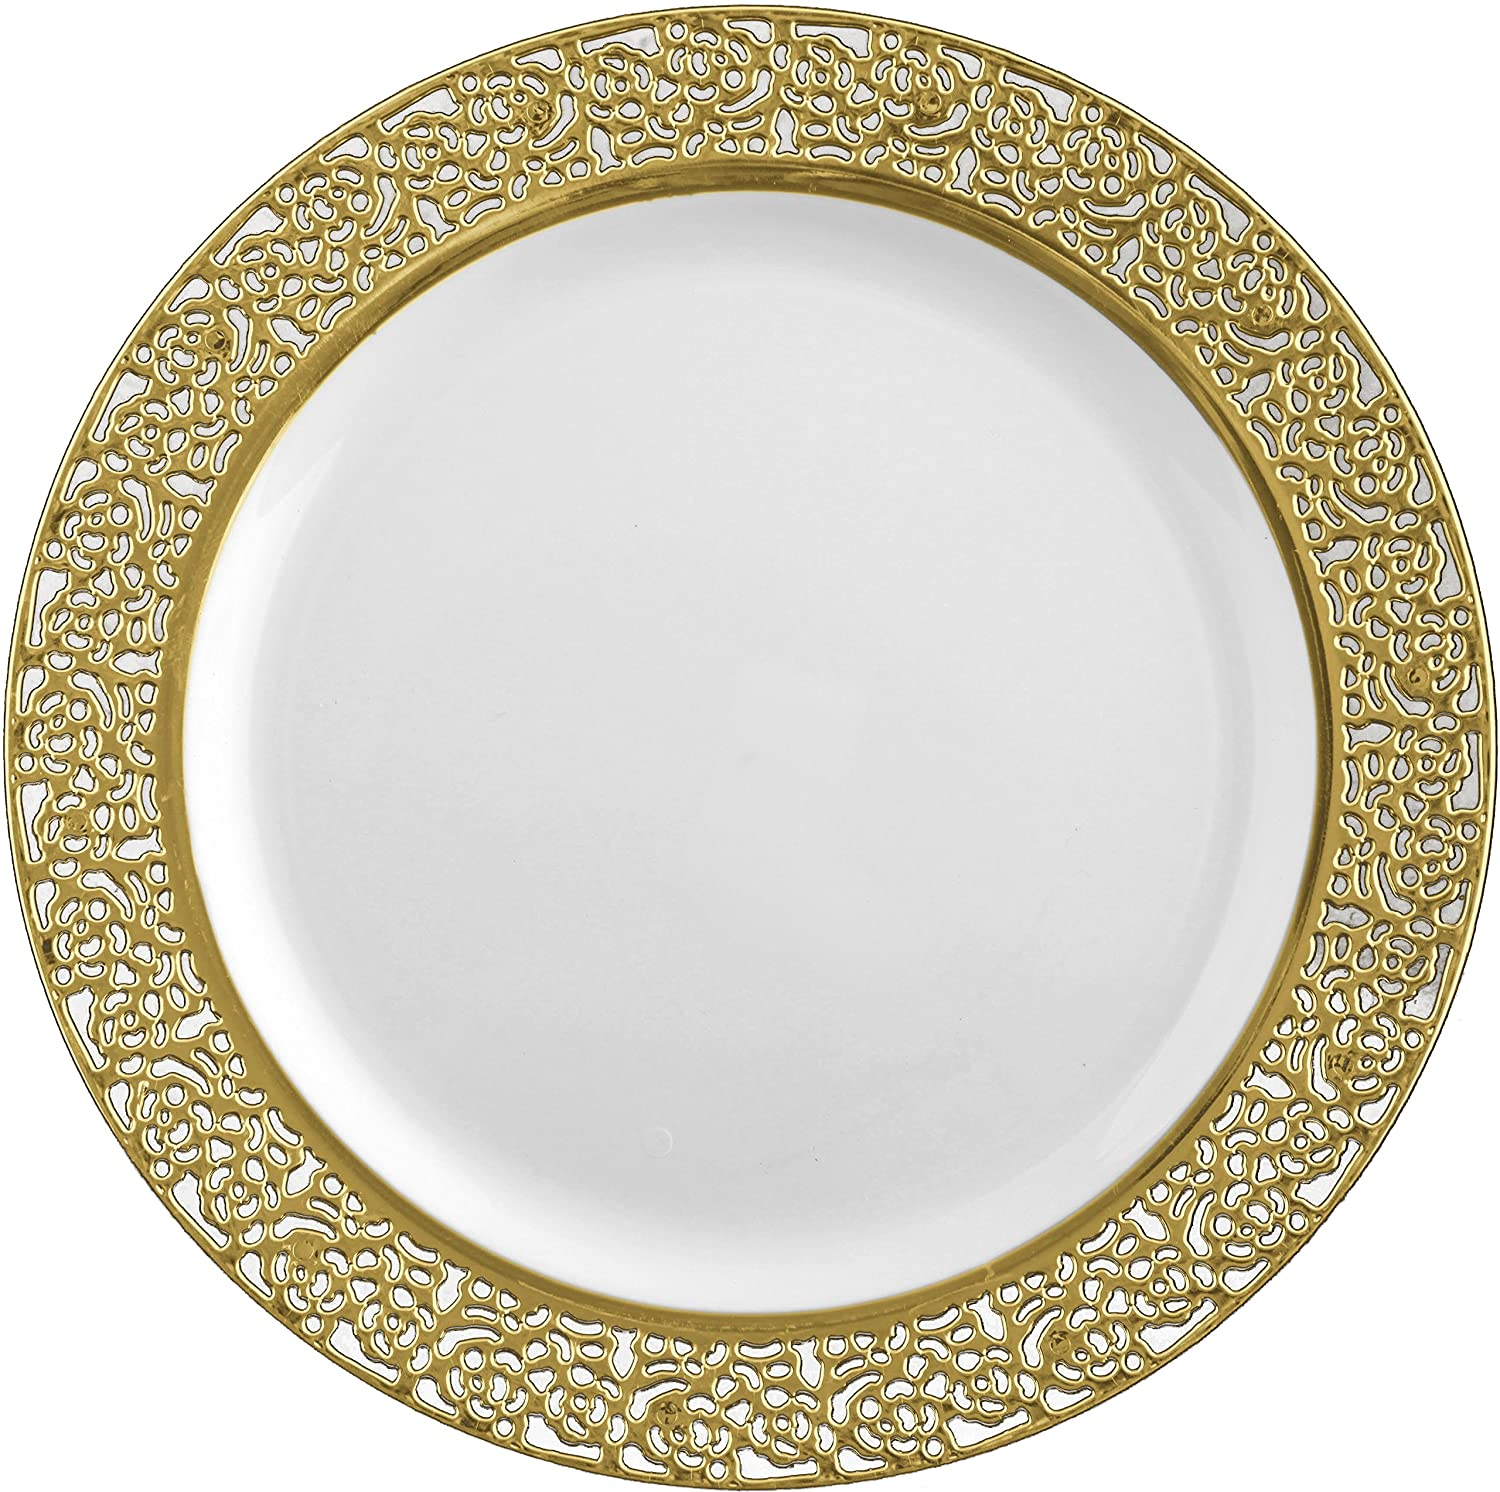 Decor Elegant Disposable Plastic Premium Dinner Plates Inspiration Gold u0026 White (10.25 -26CM Plates) Amazon.co.uk Kitchen u0026 Home  sc 1 st  Amazon UK & Decor Elegant Disposable Plastic Premium Dinner Plates Inspiration ...